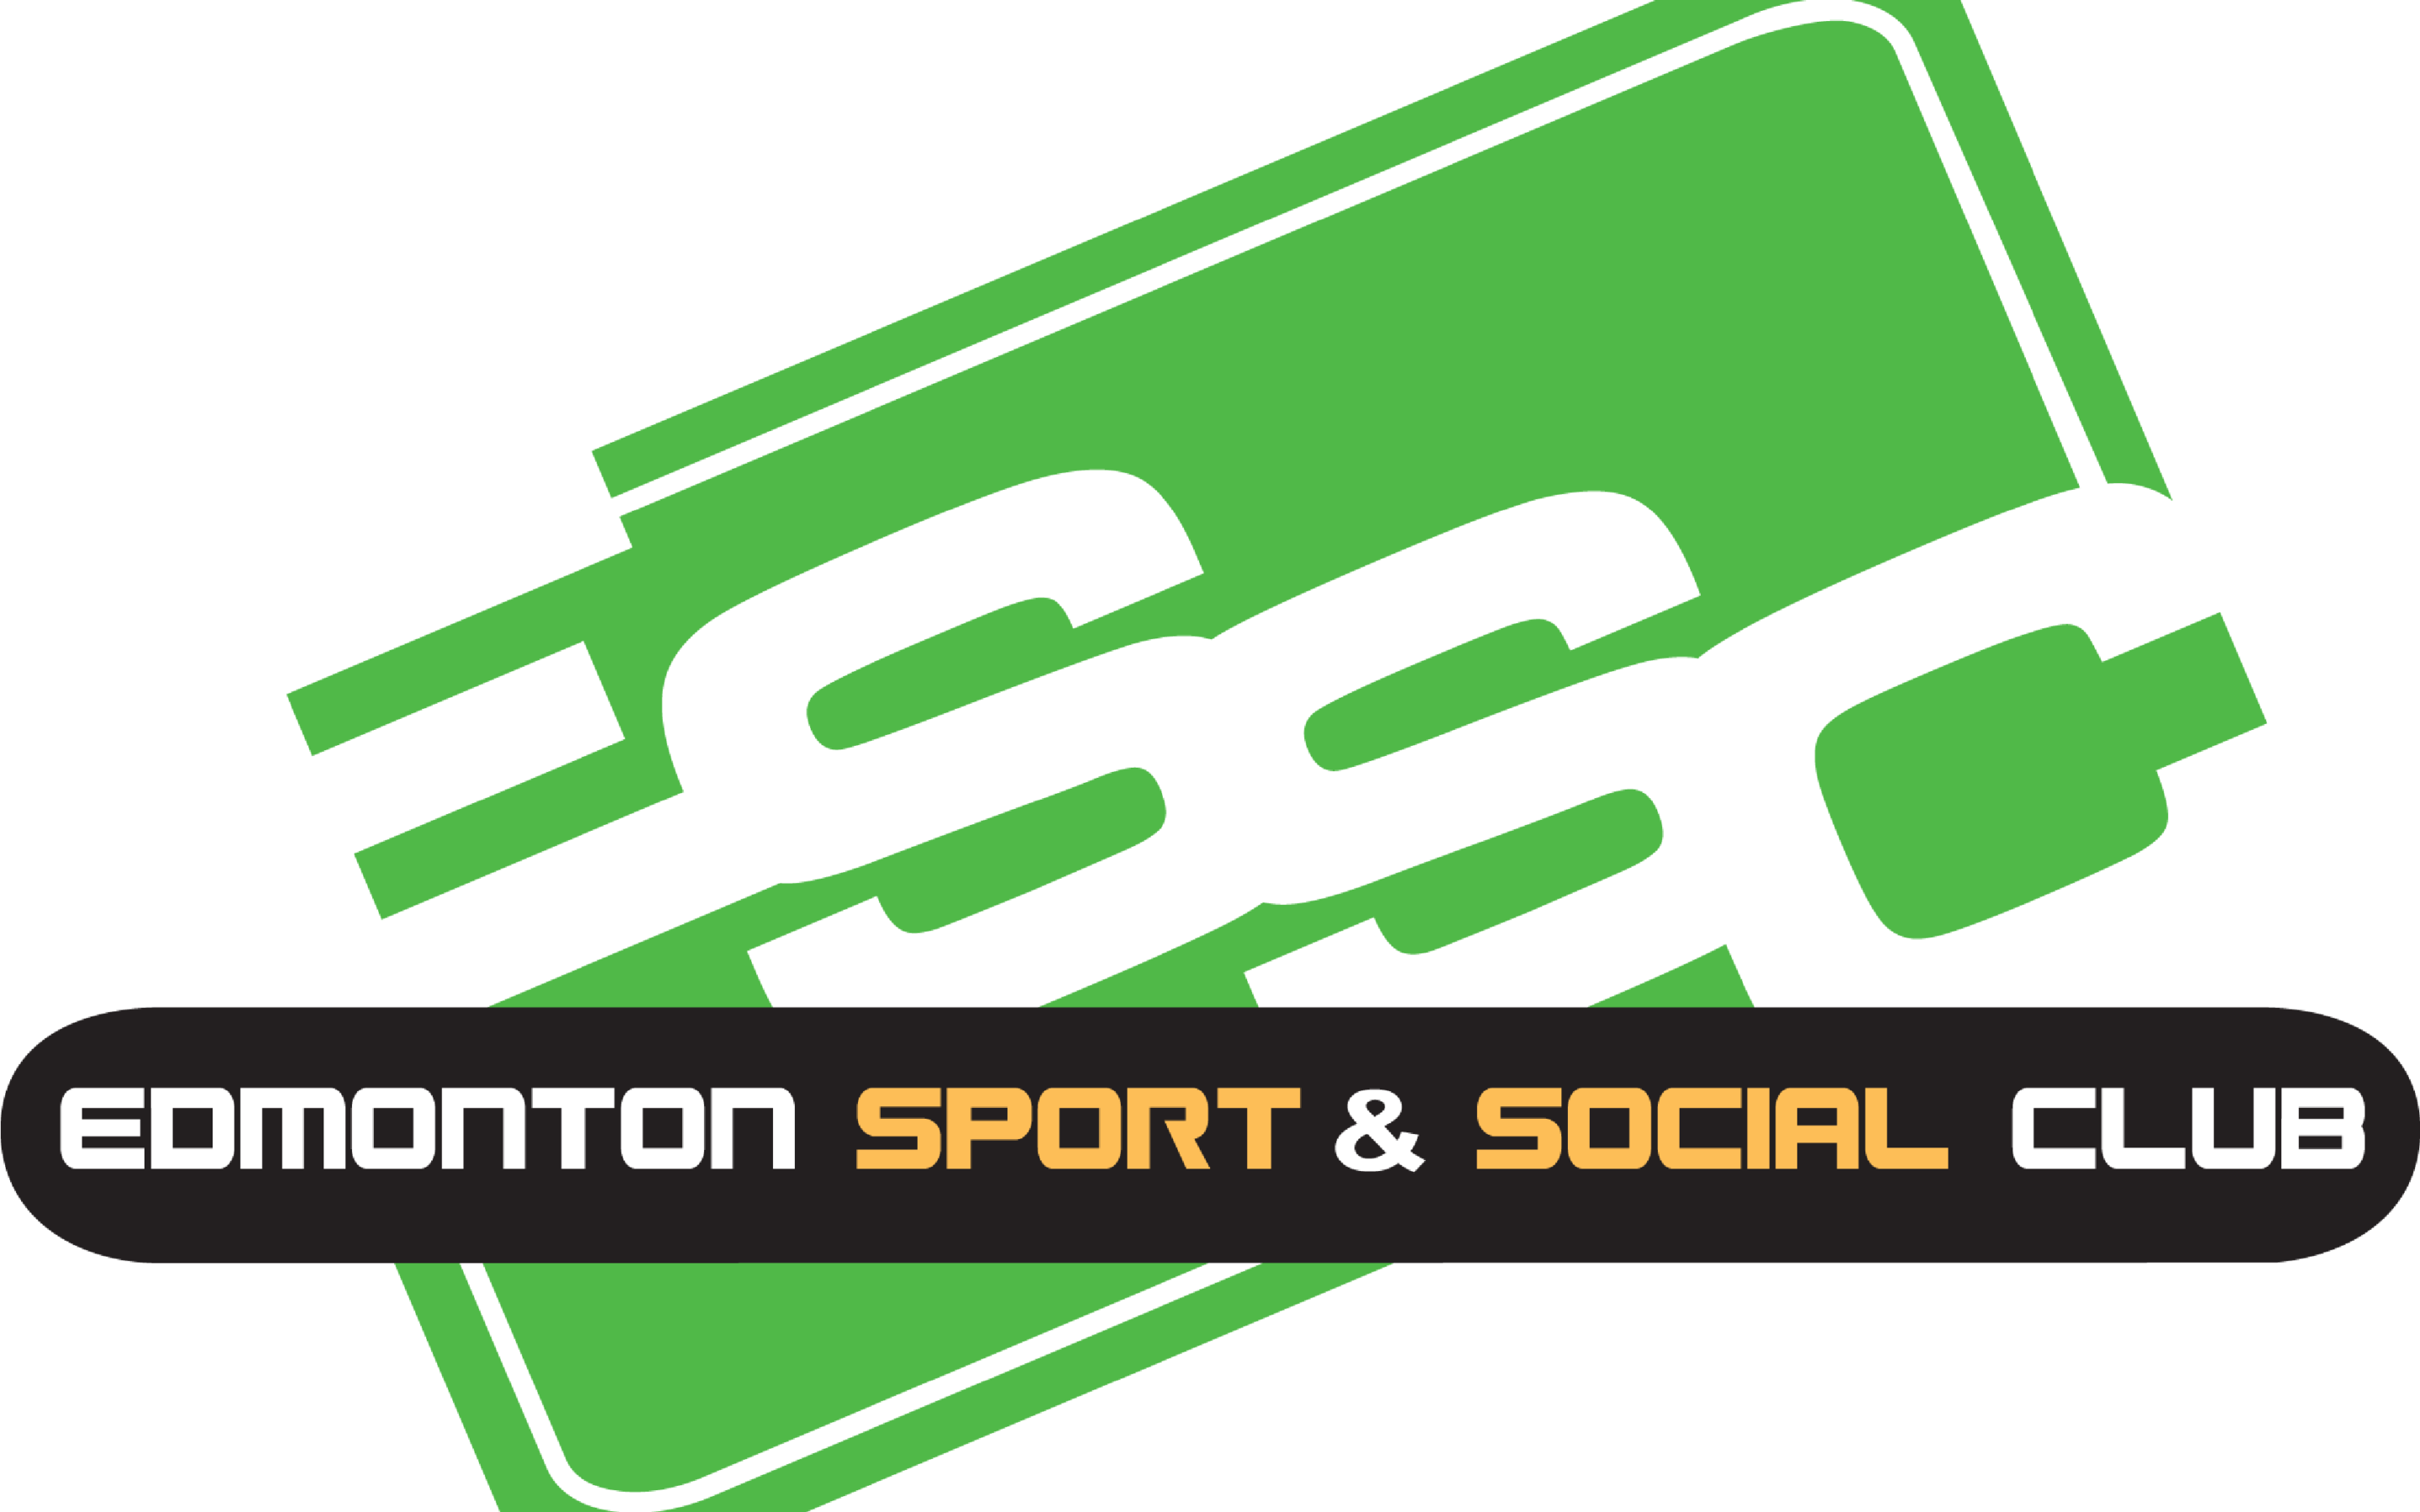 Edmonton Sport and Social Club (ESSC)